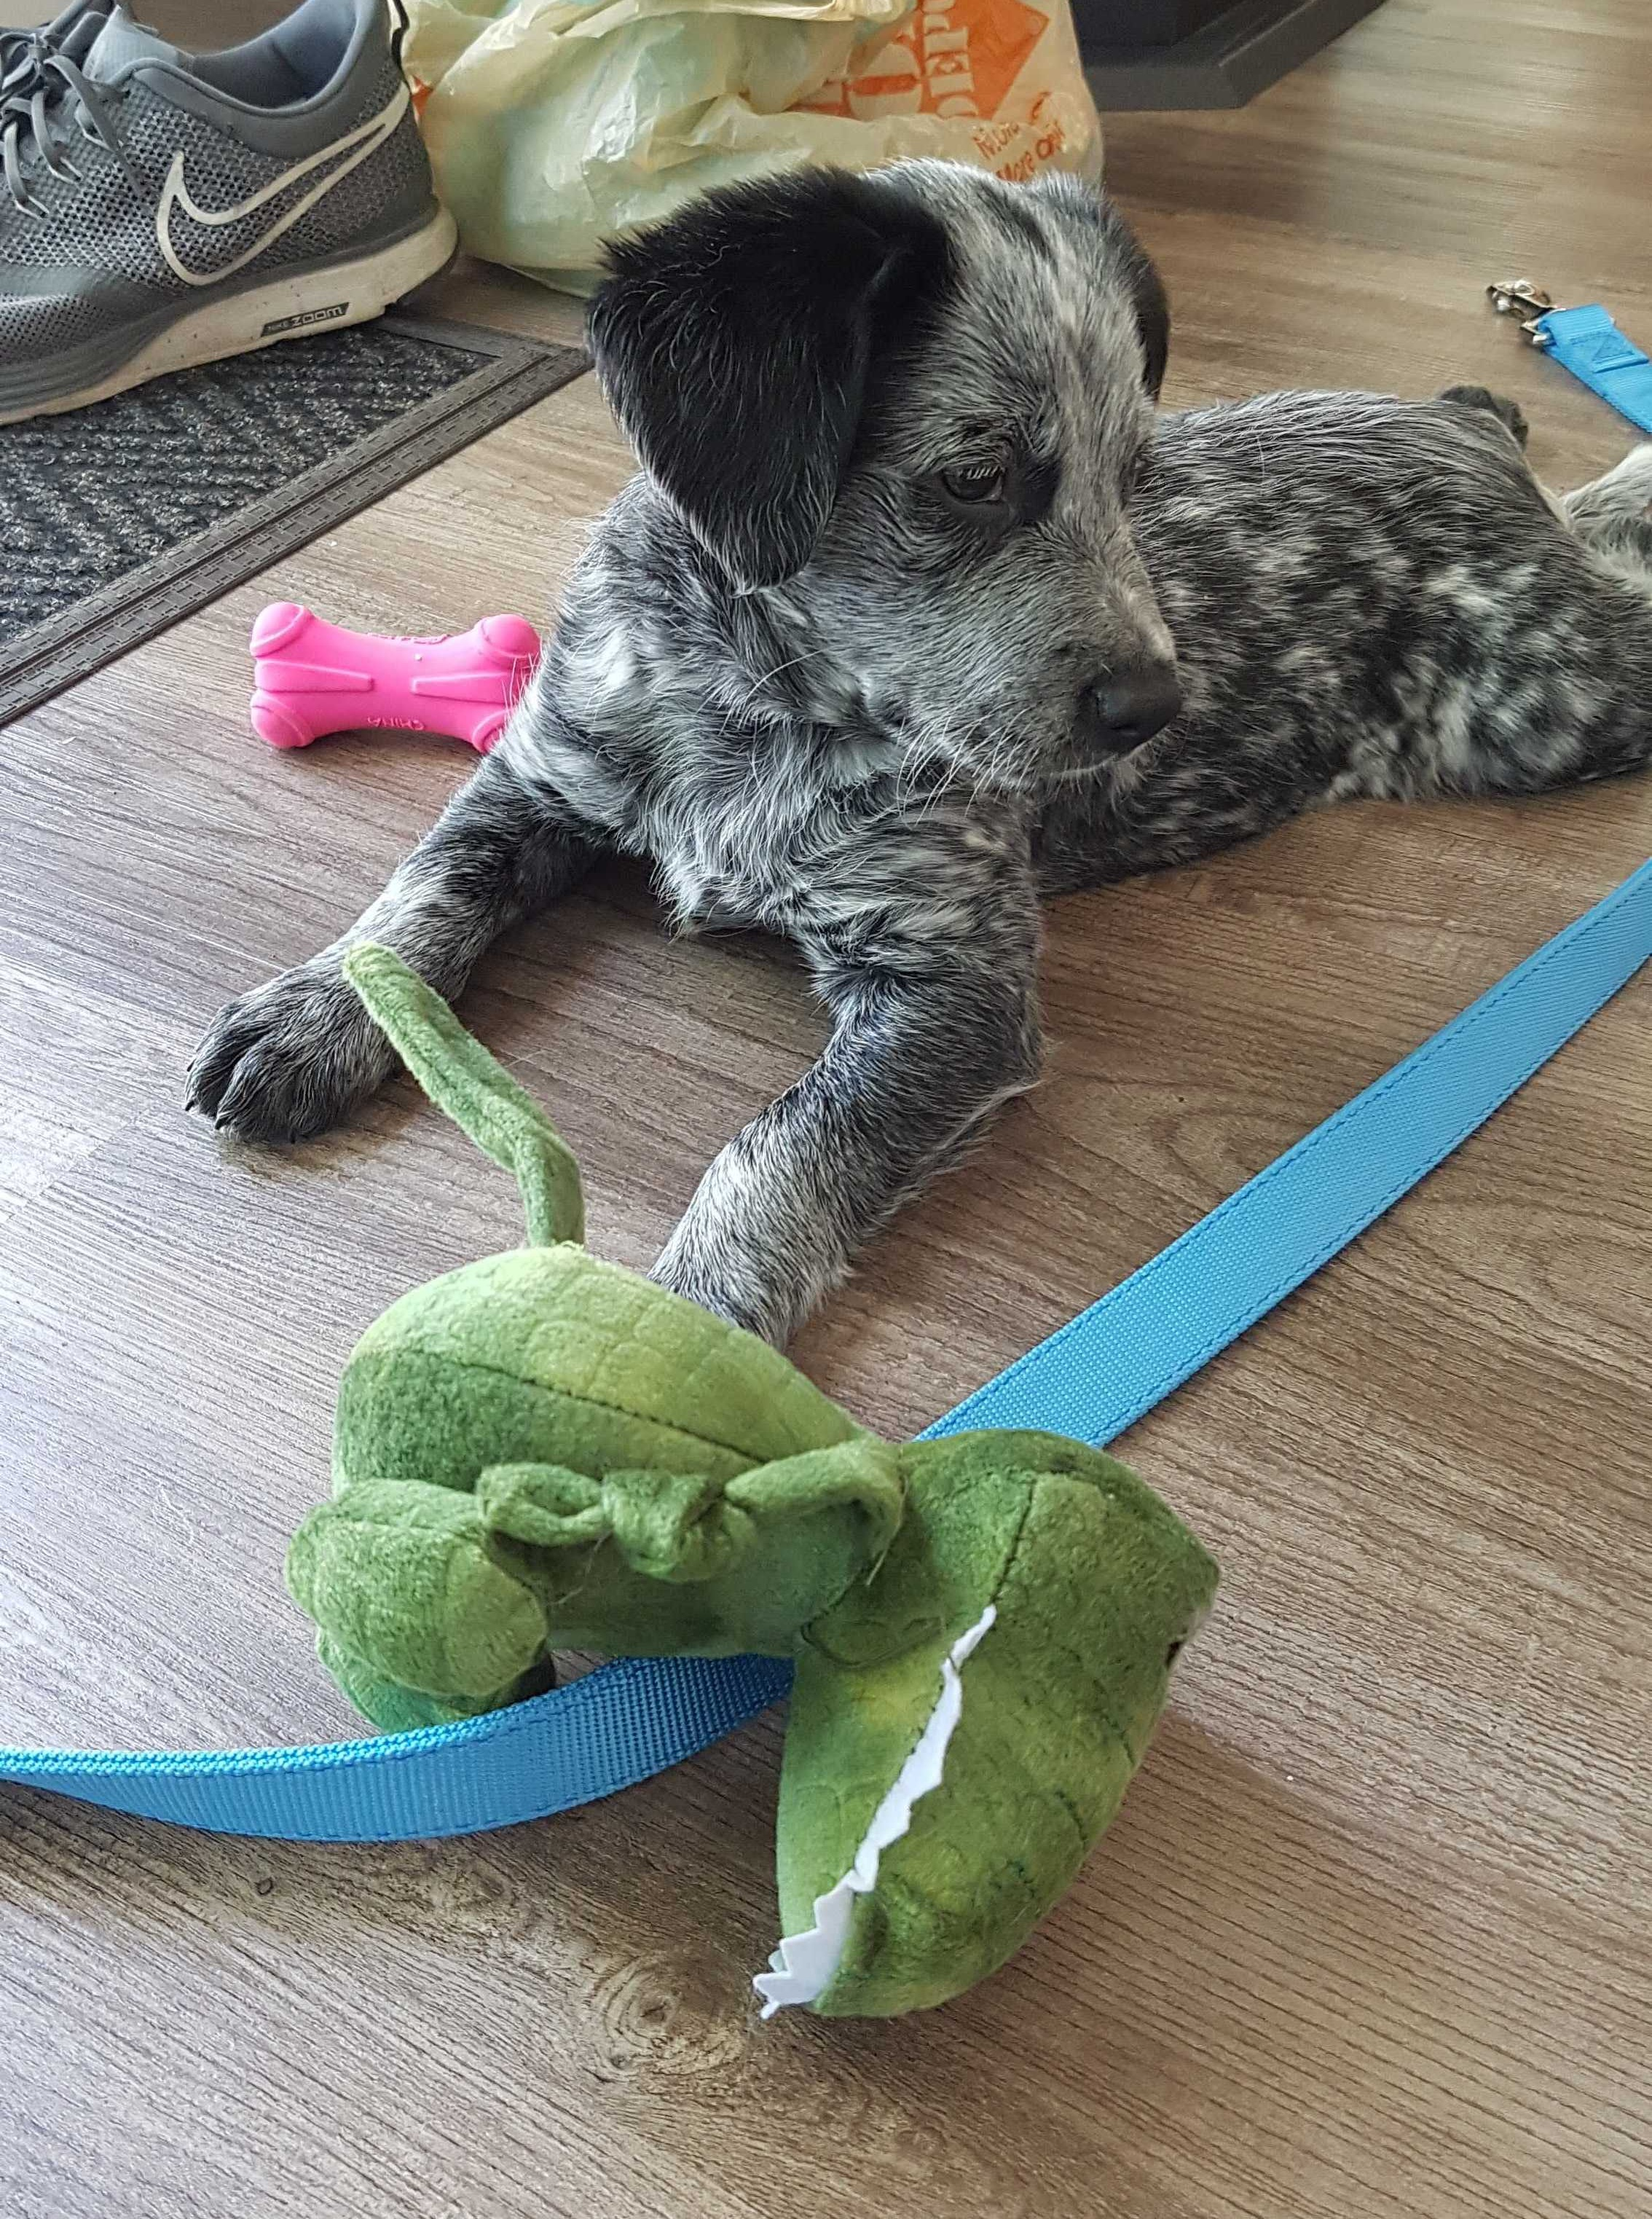 This is his dragon and he loves it.